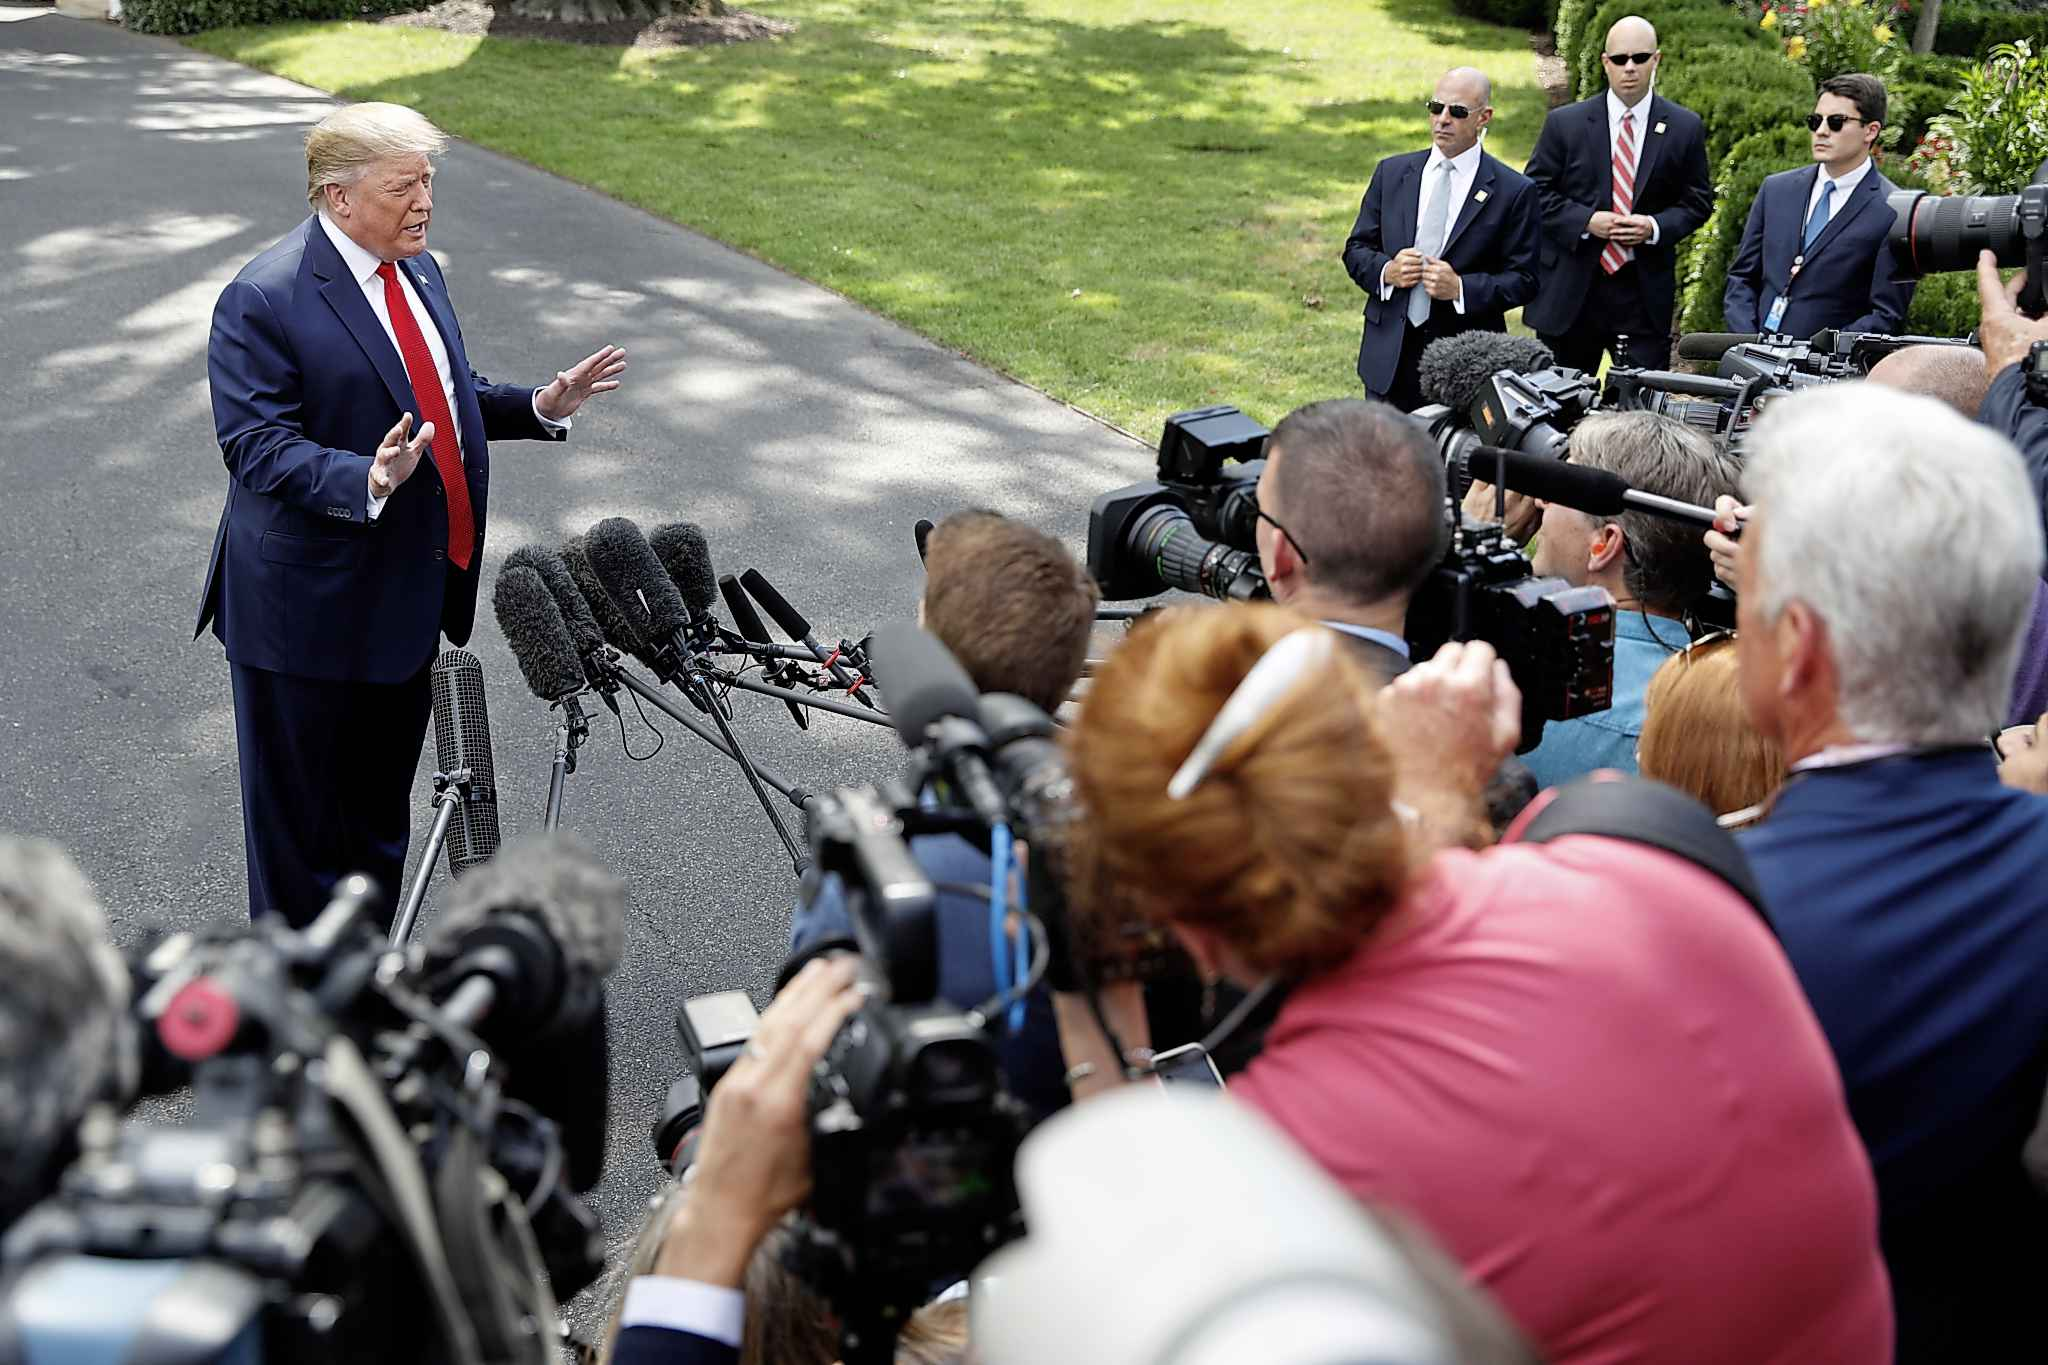 President Donald Trump speaks to the media about the testimony of White House Special Counsel Robert Mueller to Congress, Wednesday, July 24, 2019, at the White House in Washington. (AP Photo/Jacquelyn Martin)